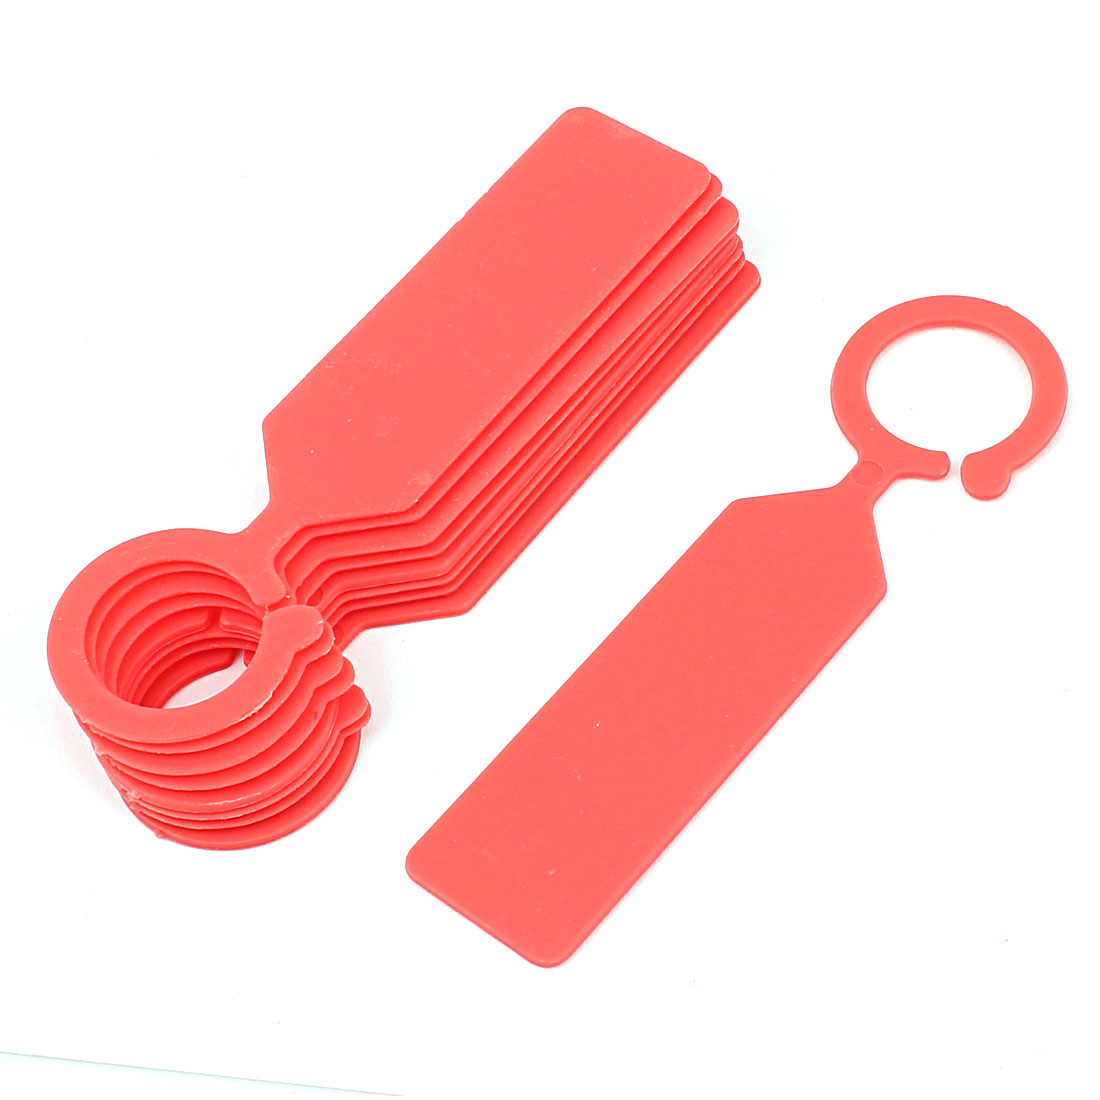 Plastic Hook Nursery Garden Plant Seed Hanging Tag Label Marker Red 10Pcs